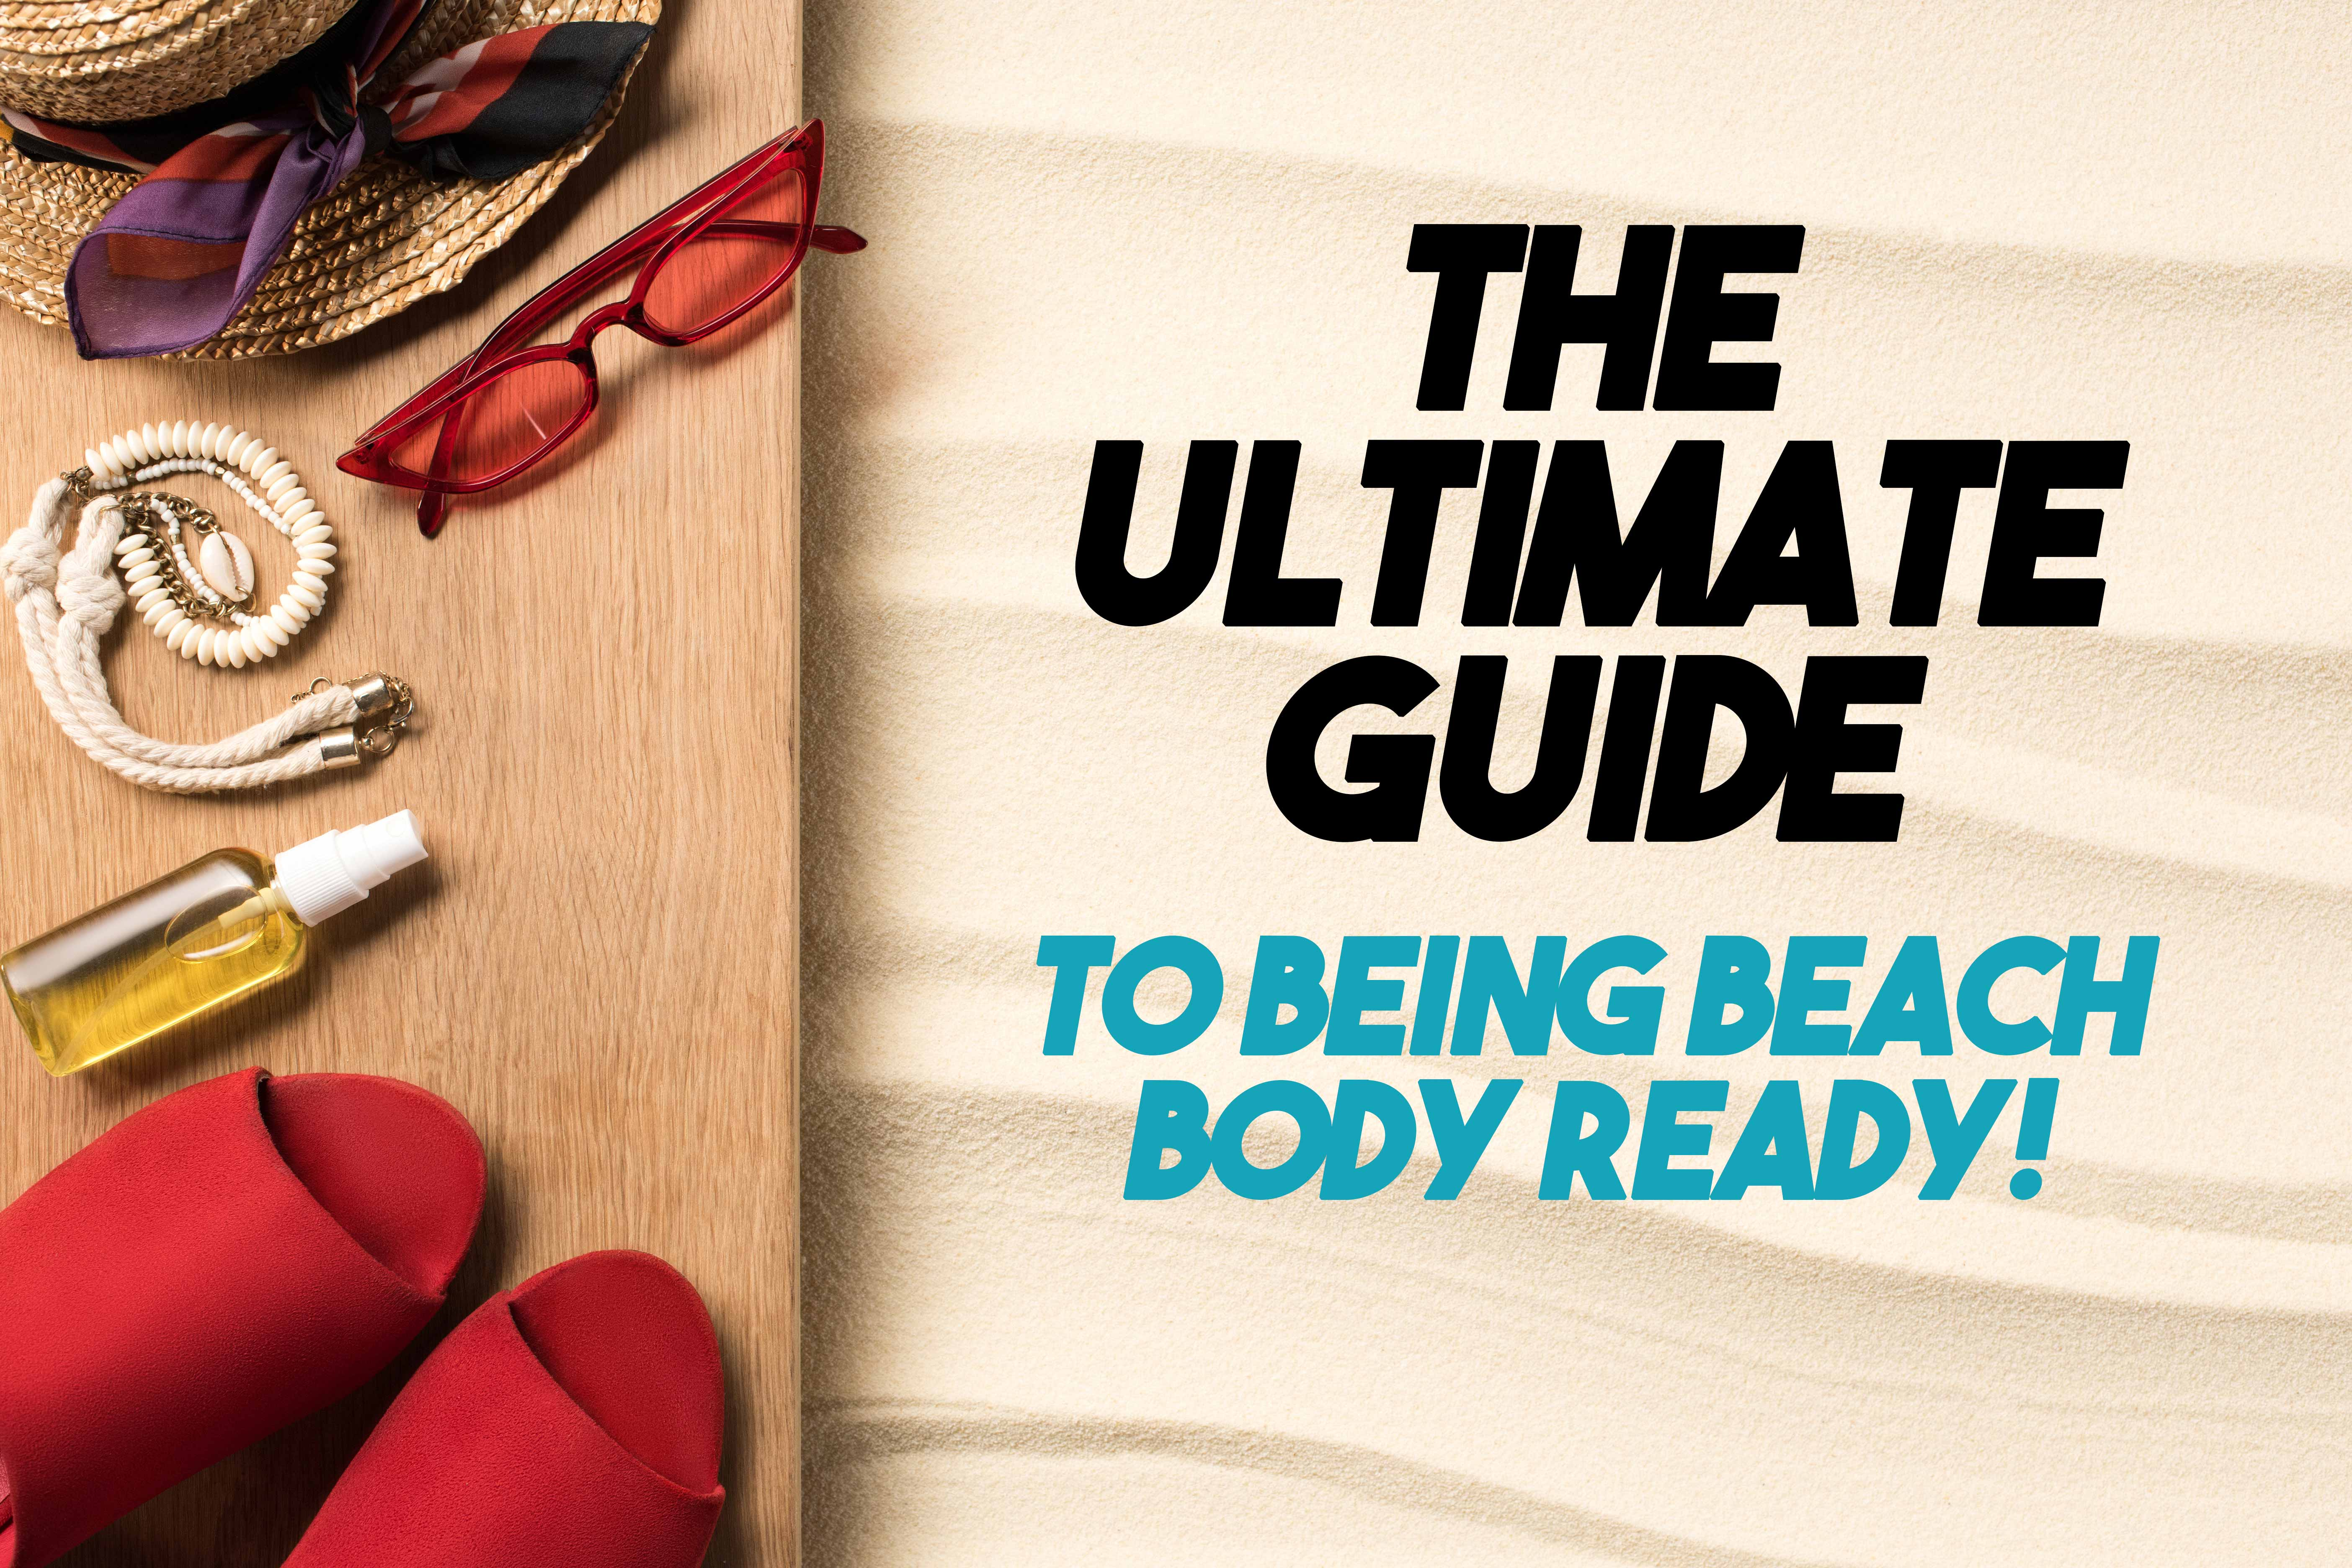 The Ultimate Guide To Being Beach Body Ready!_